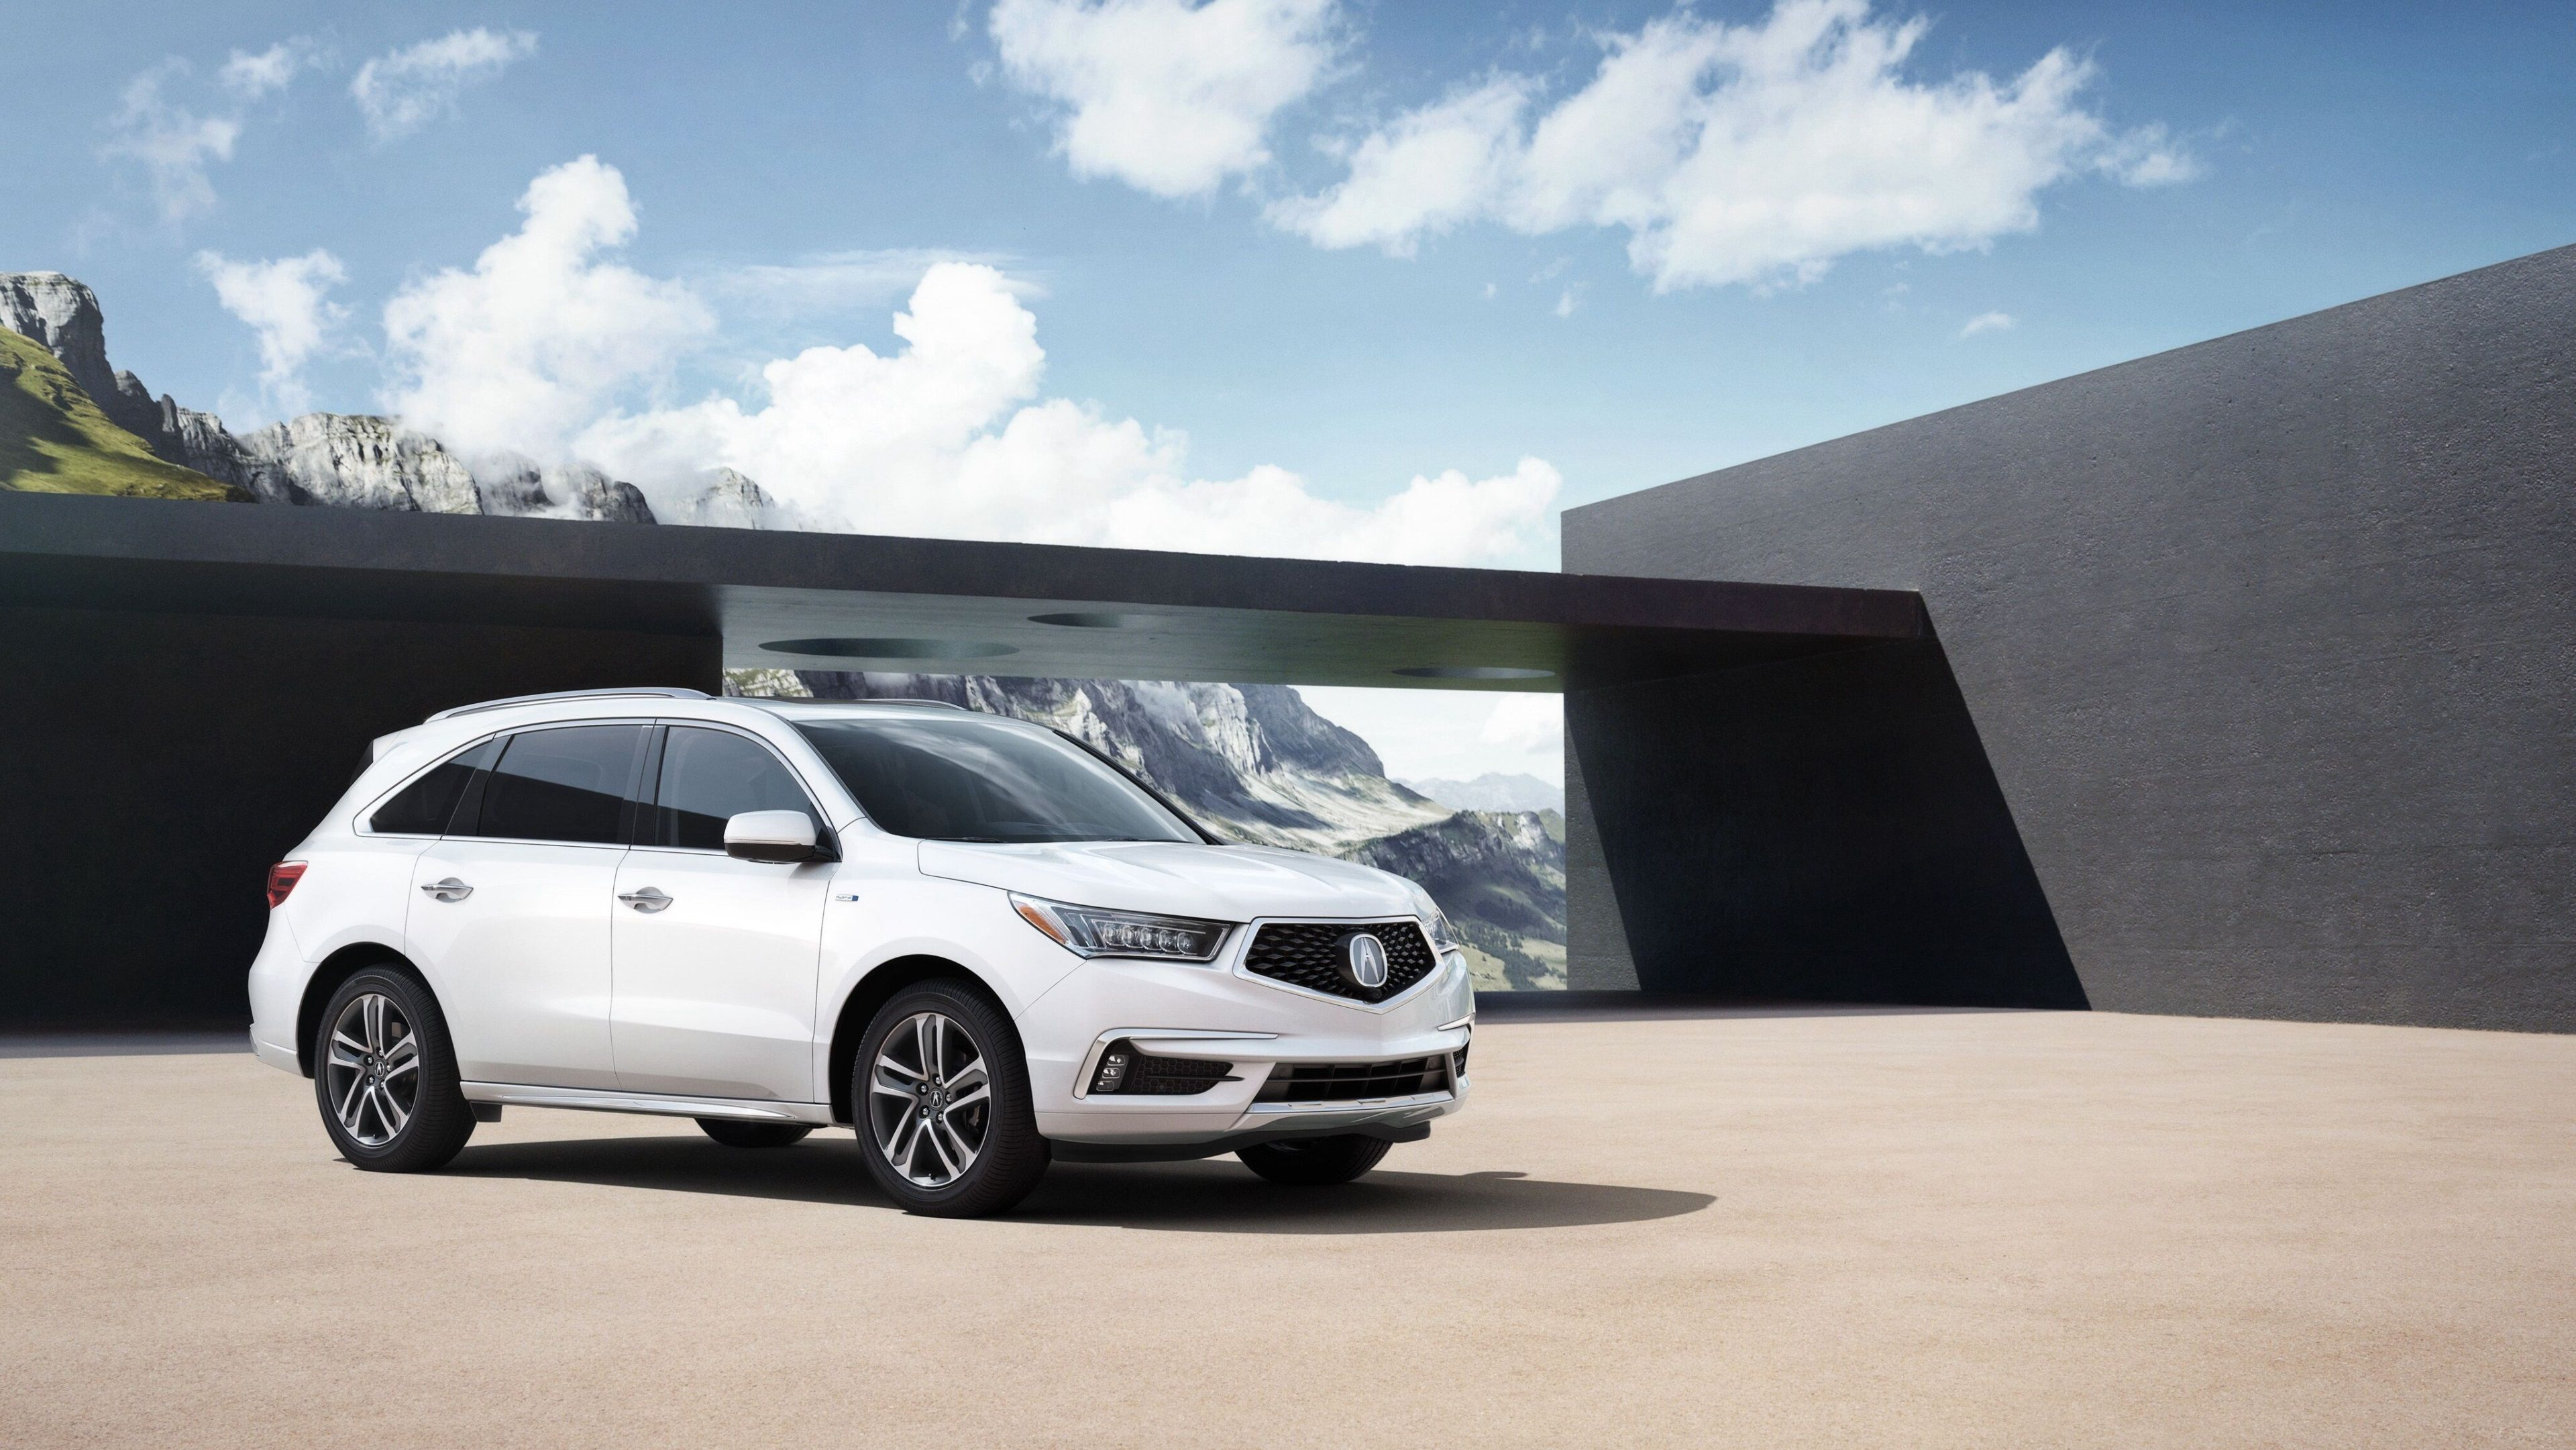 tweaks small mdx washington dec news efficient for the acura times but cost